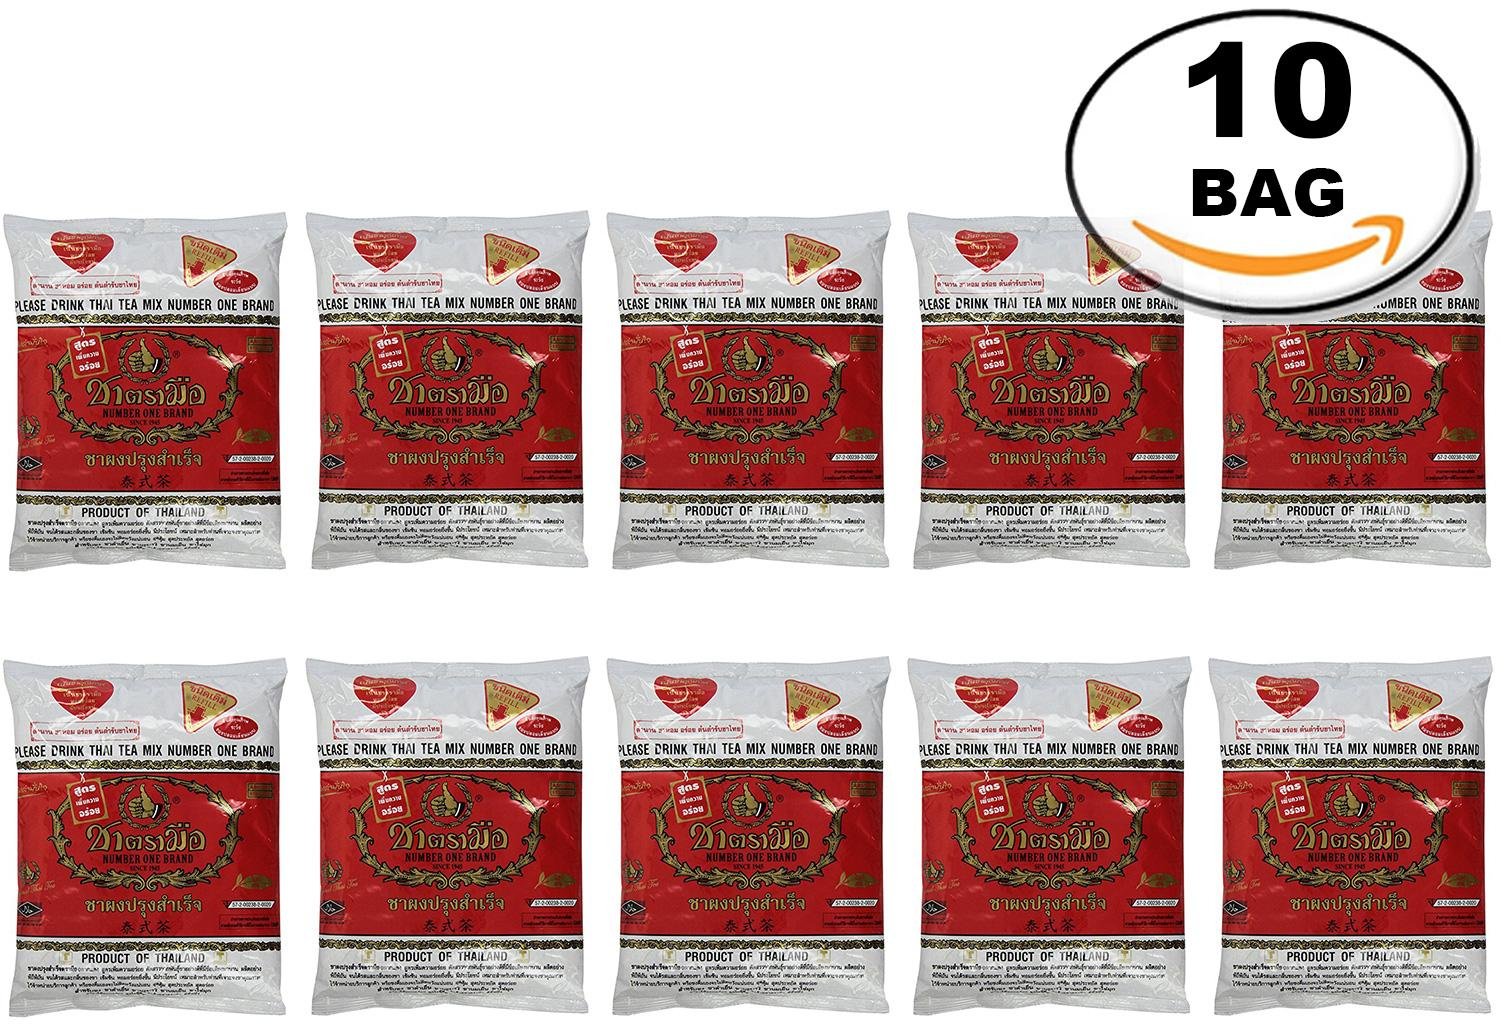 WHOLESALE 10 Bag Number One The Original Thai Iced Tea Mix - Number One  Brand Imported From Thailand - Great for Restaurants That Want to Serve